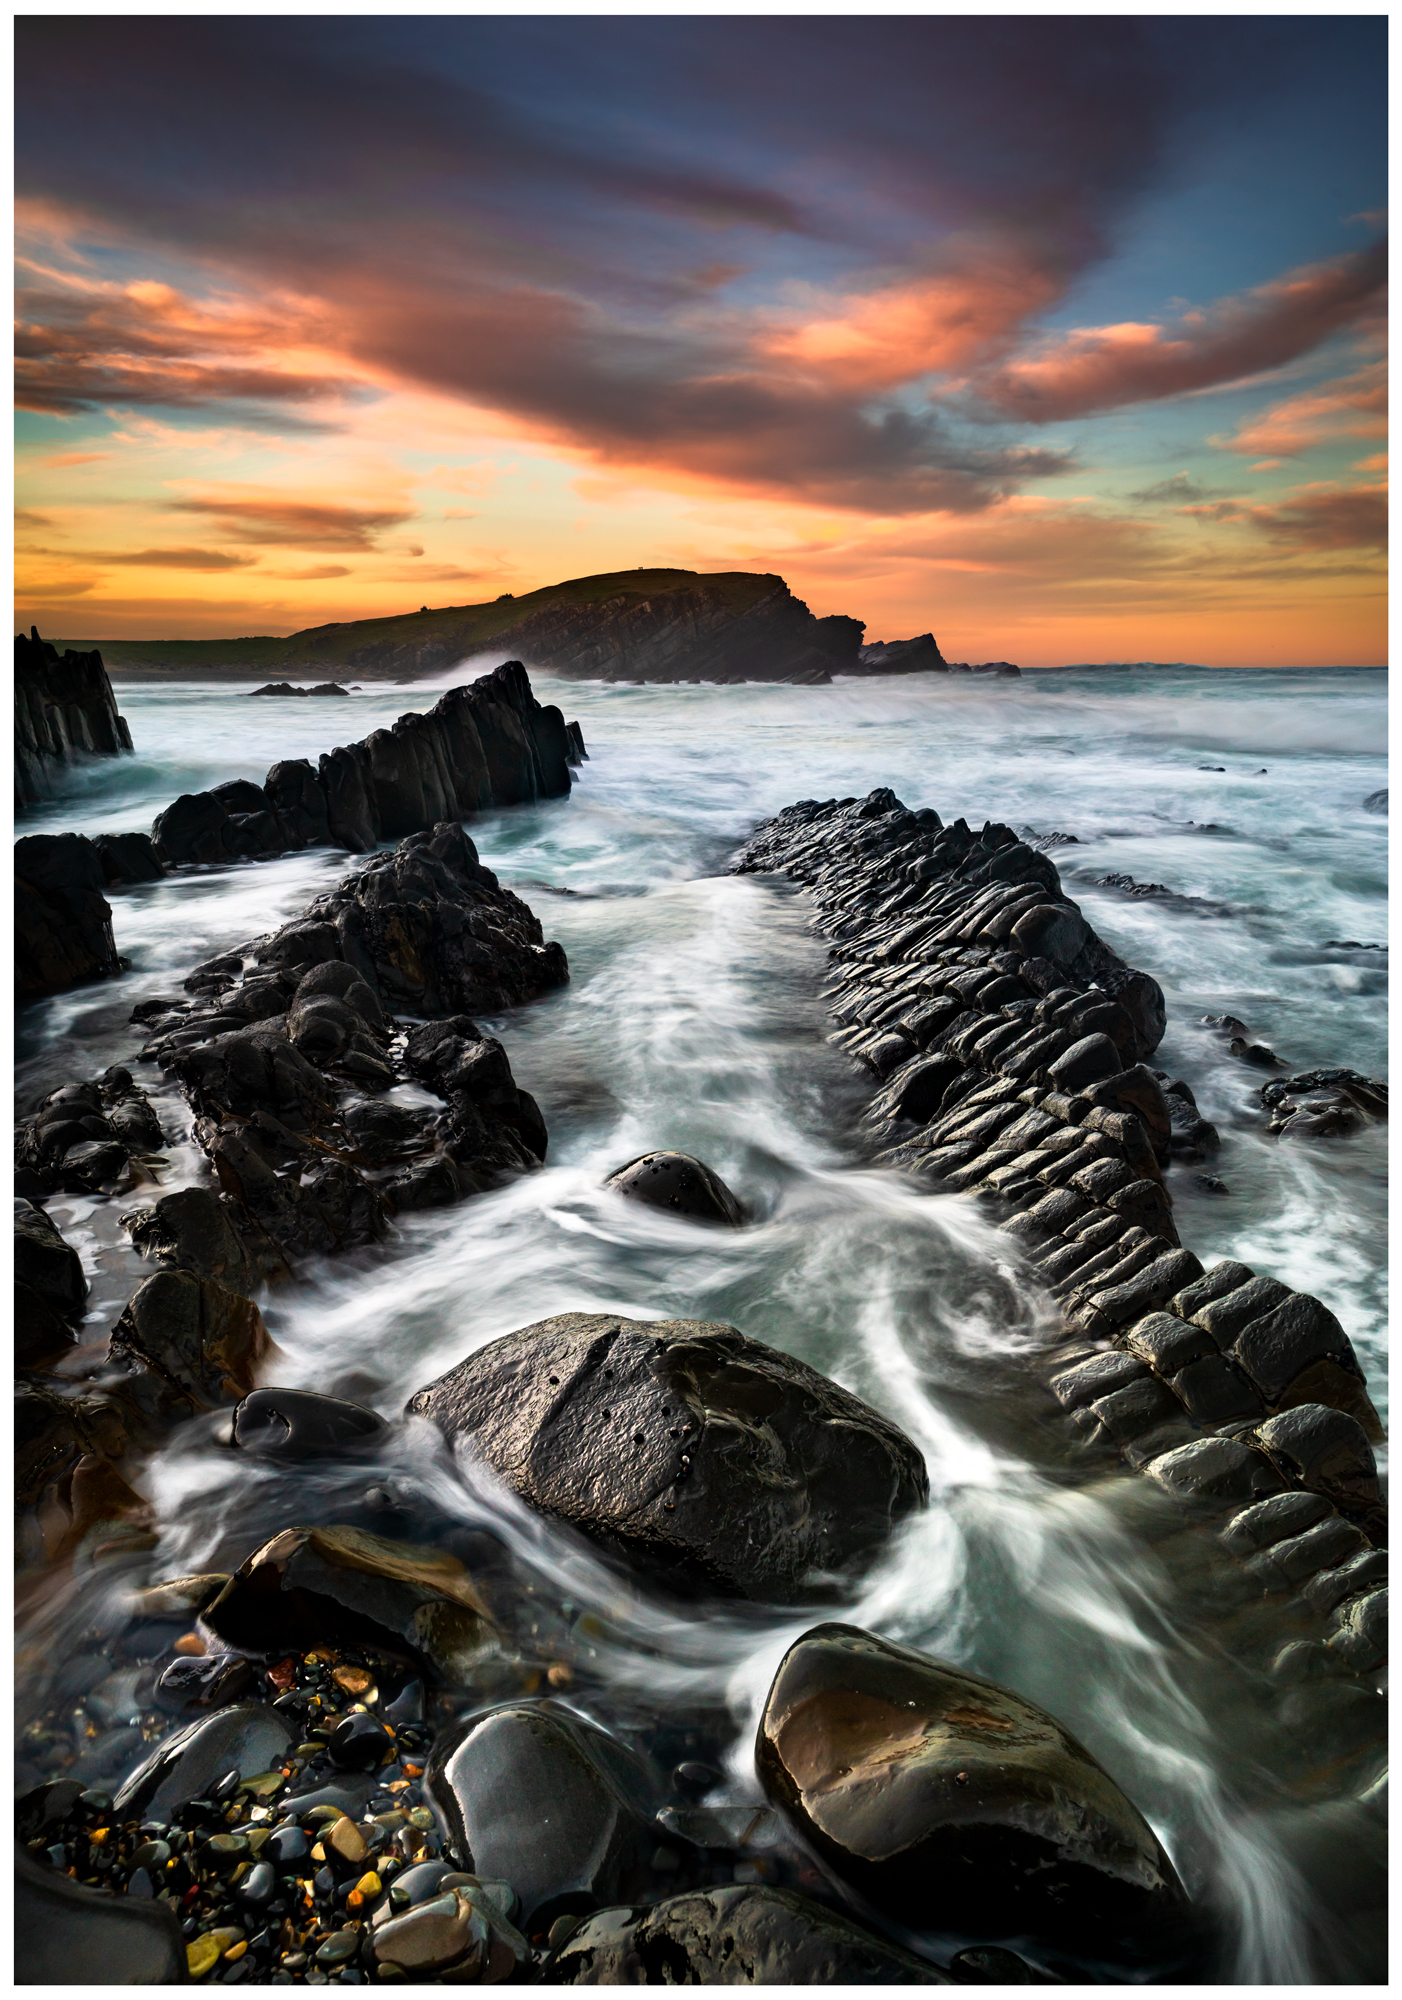 sunset over pebbly beach in crescent head nsw australia